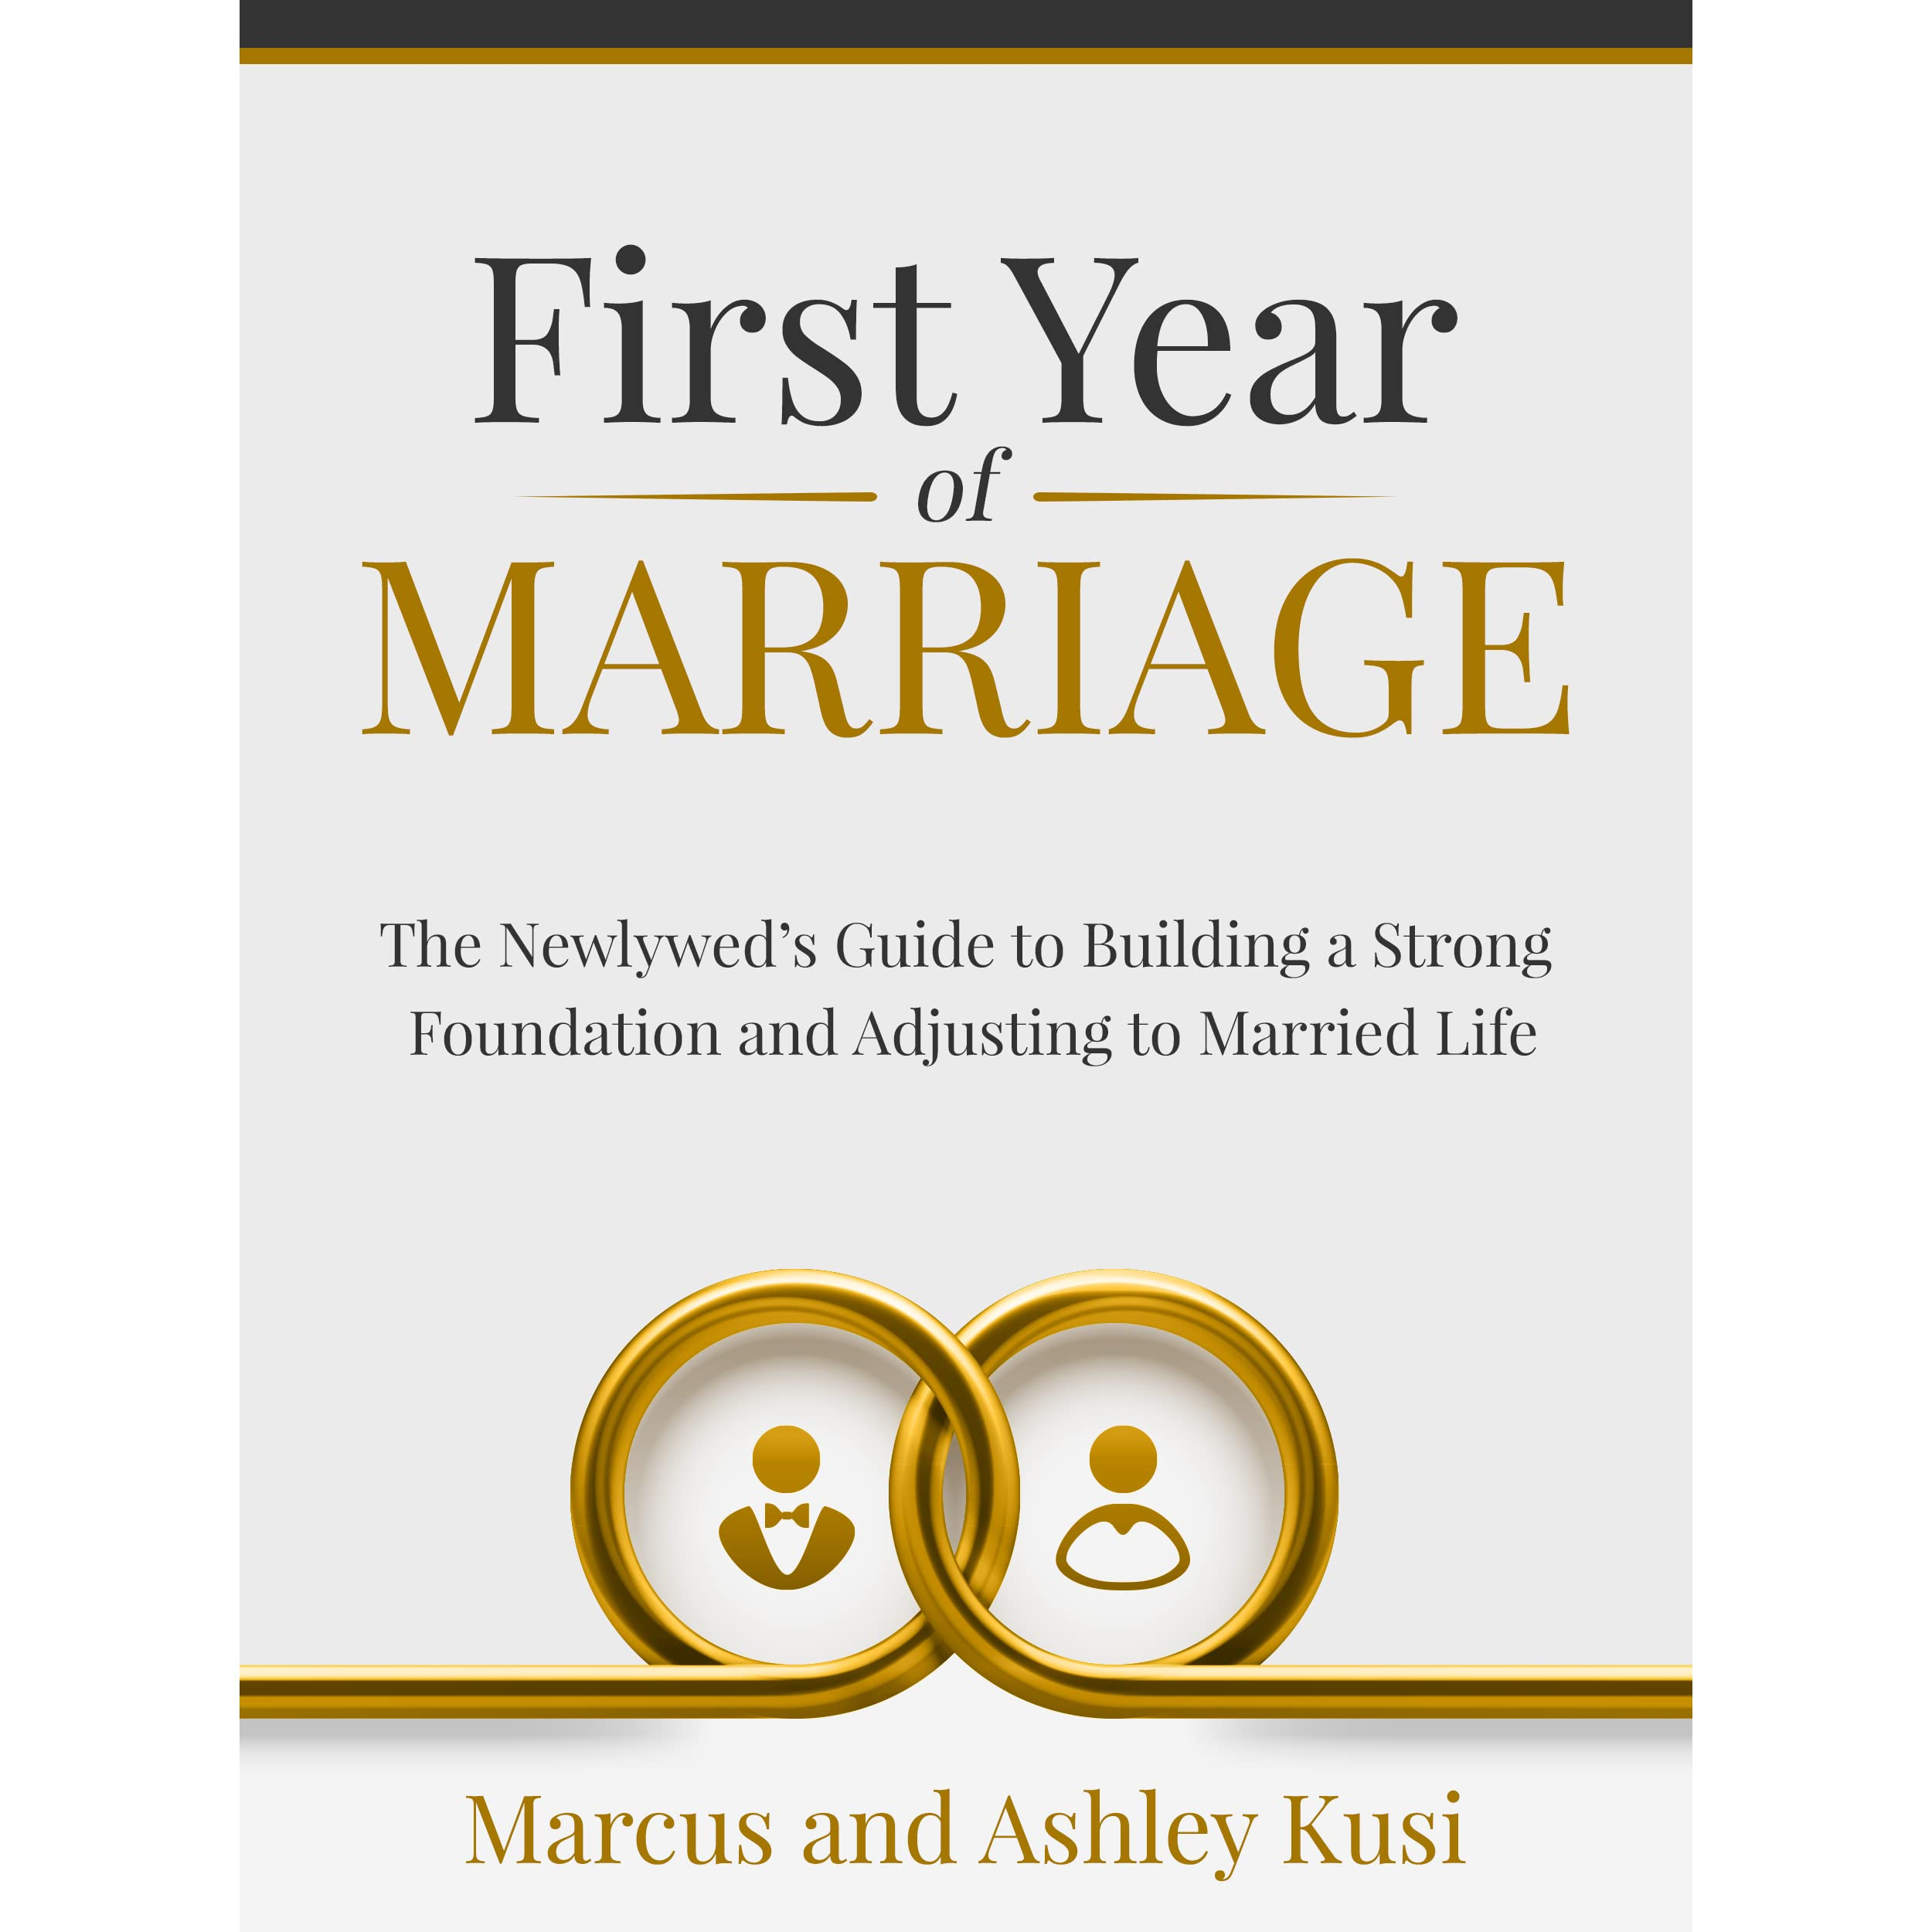 First Year Of Marriage: First Year Of Marriage: The Newlywed's Guide To Building A